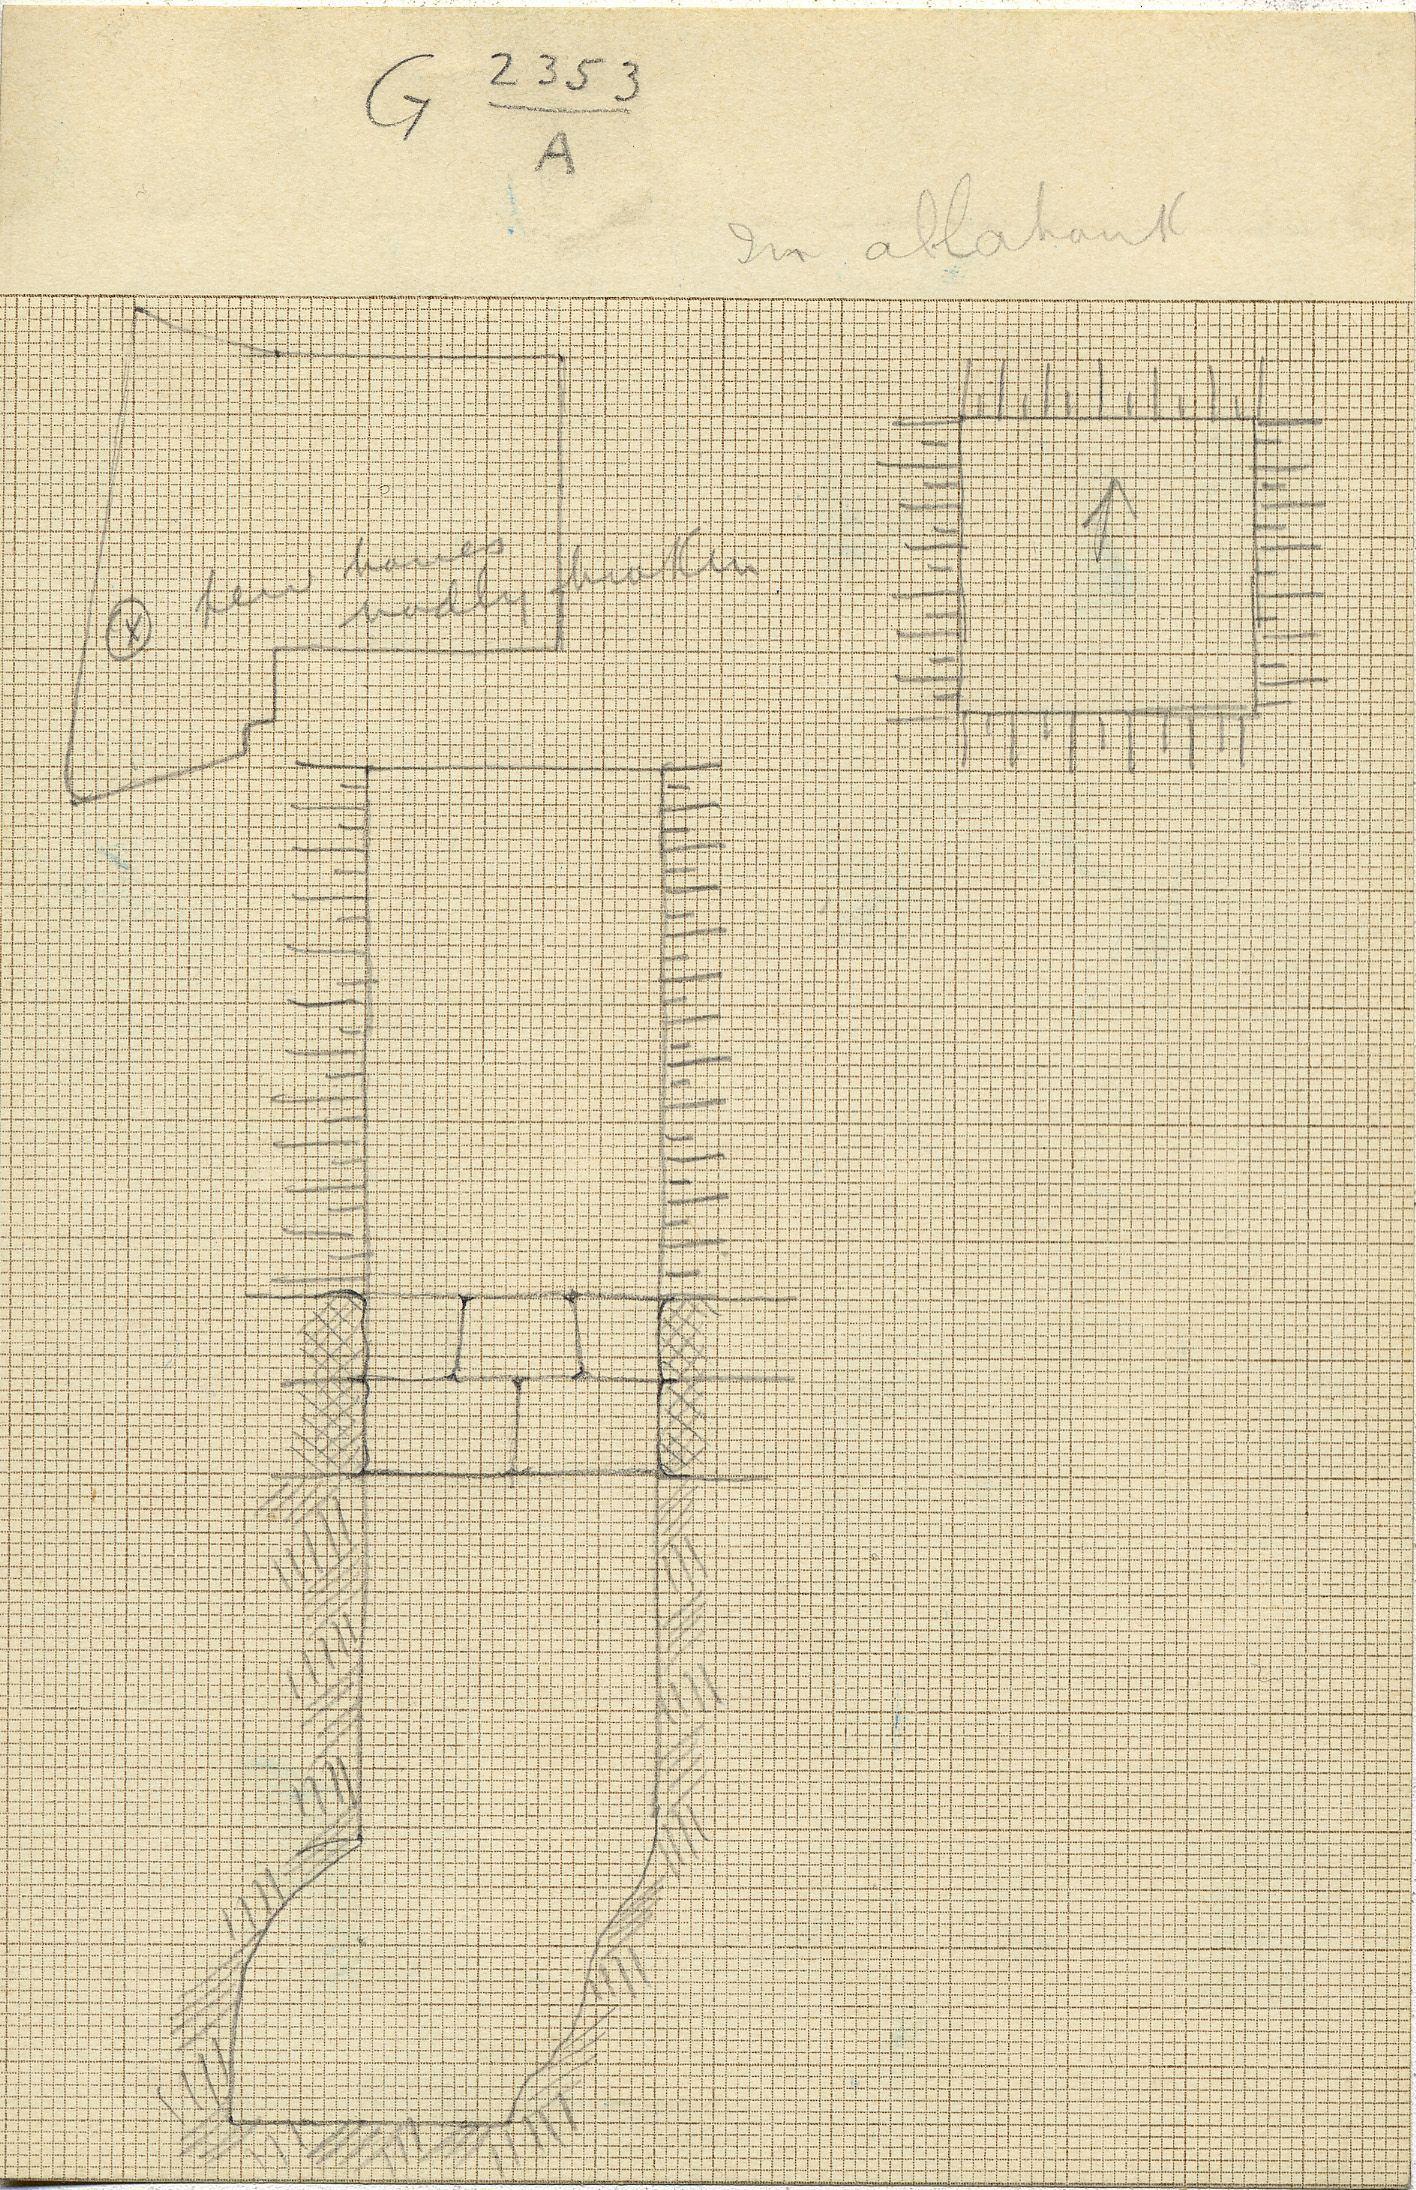 Maps and plans: G 2353, Shaft A